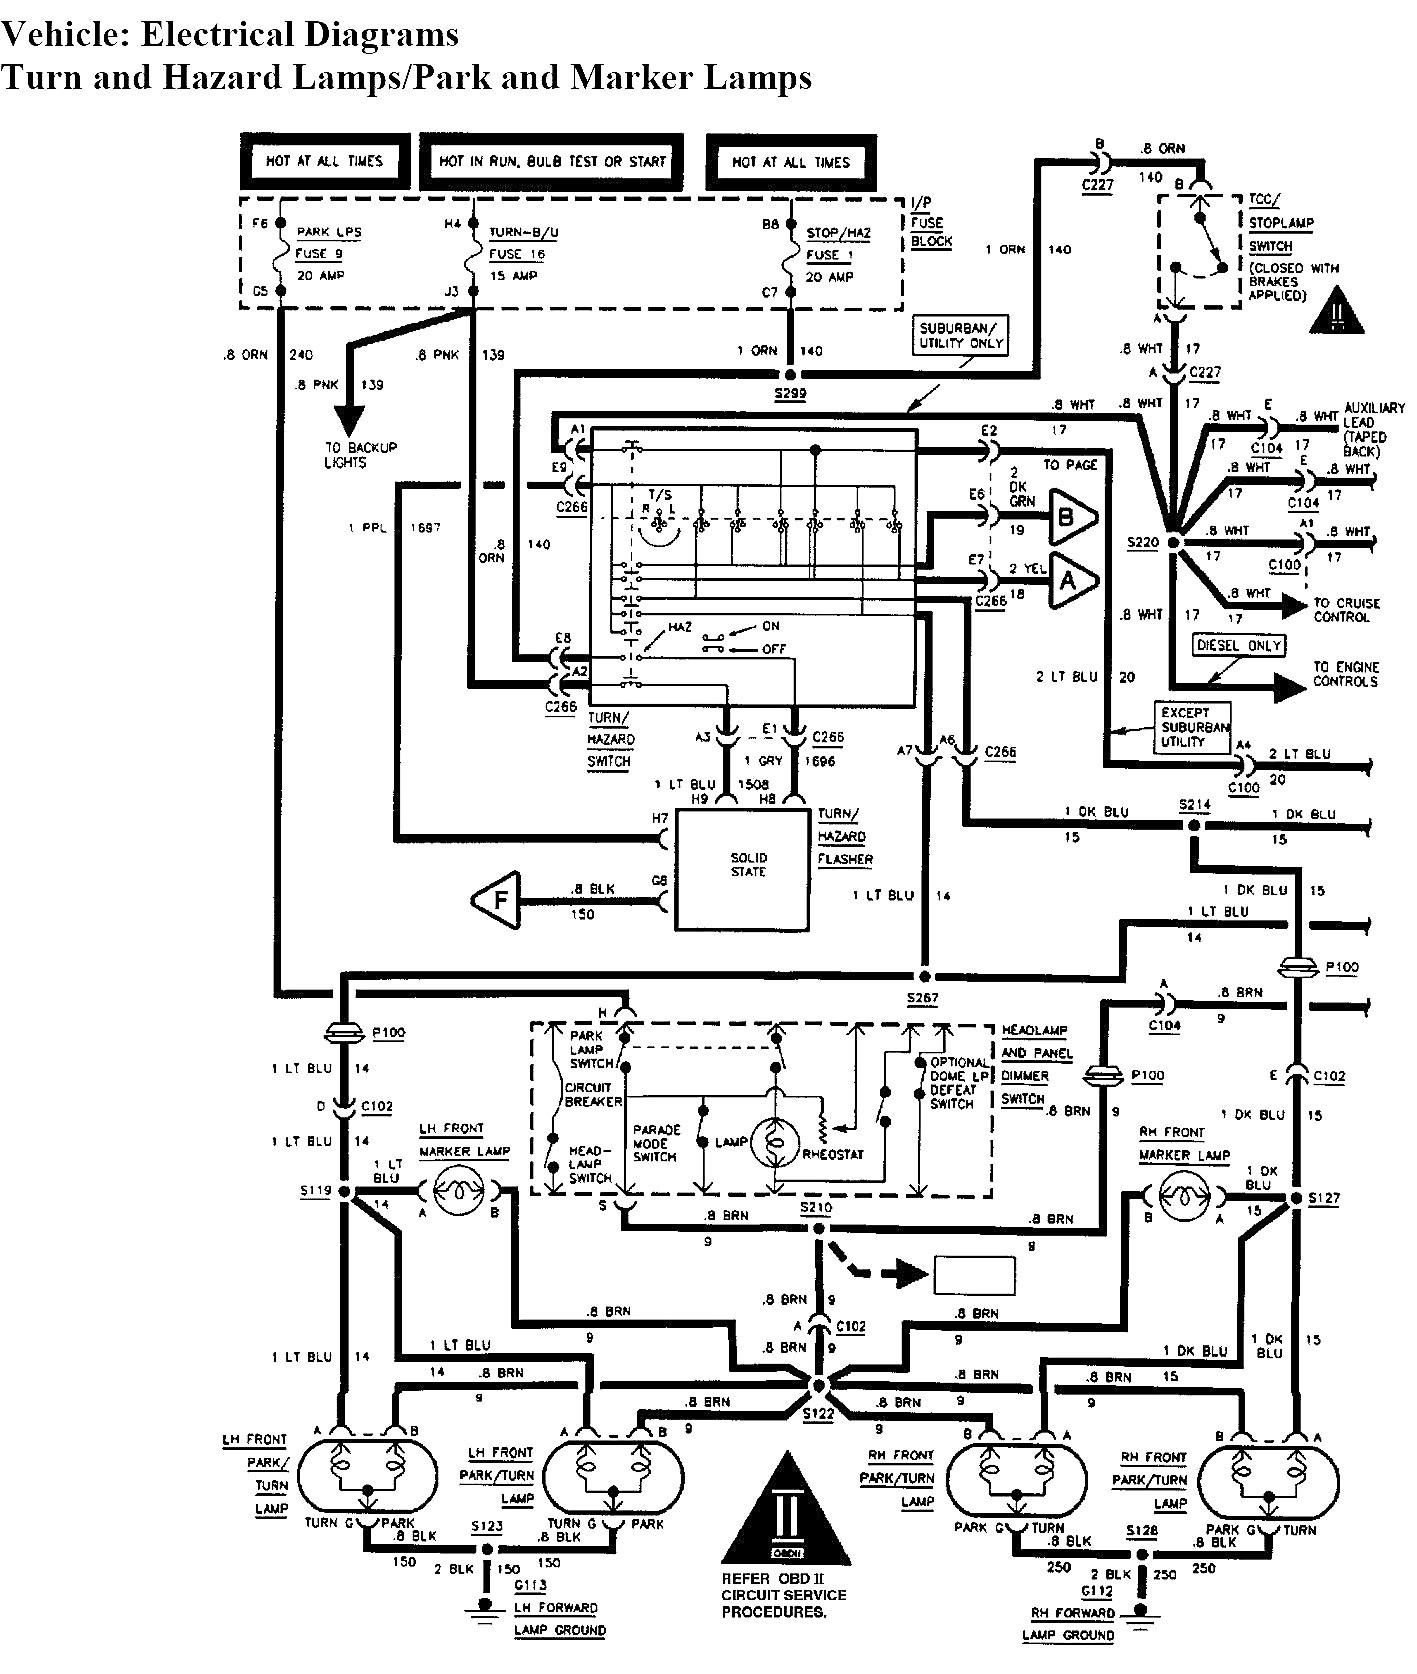 hight resolution of 2006 chevy c5500 wiring diagram